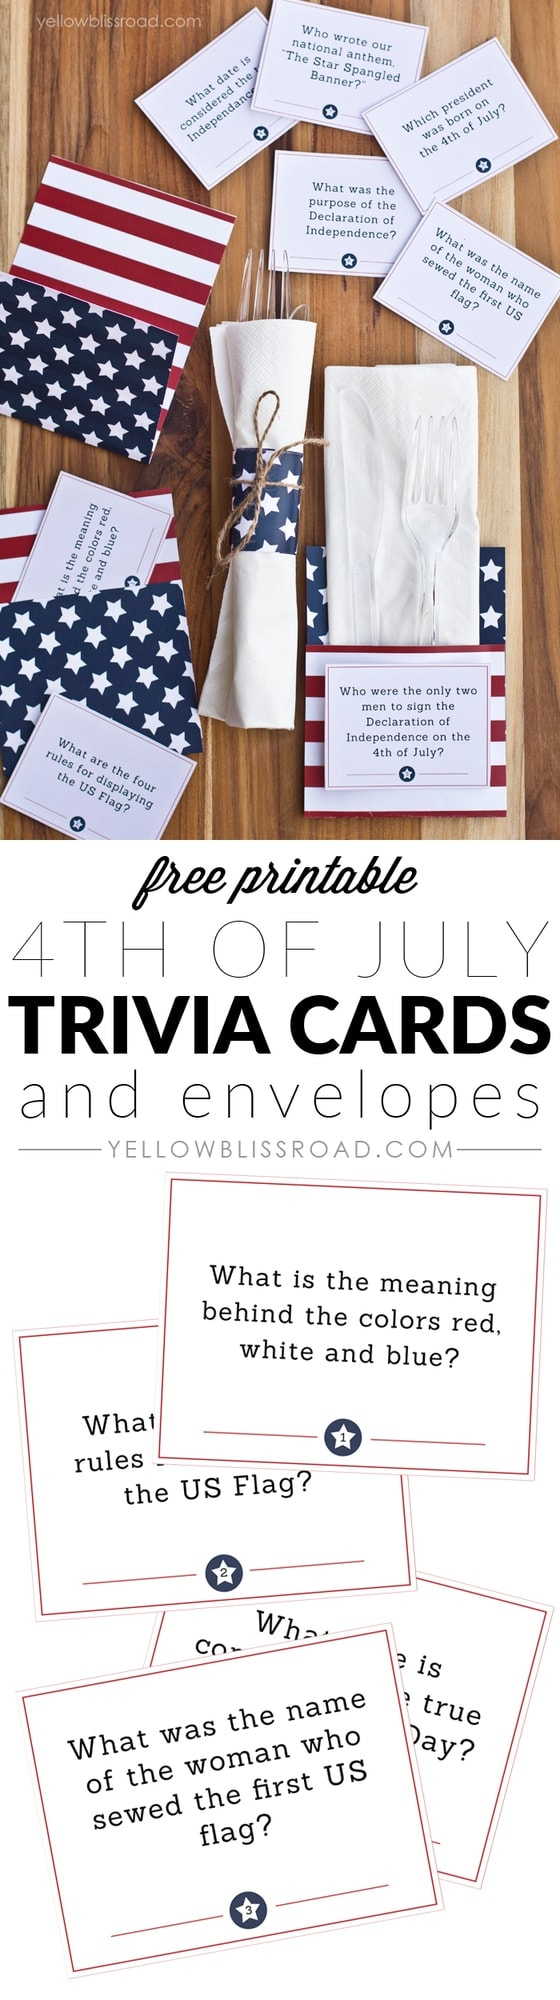 picture regarding 4th of July Trivia Printable identified as Free of charge Printable 4th of July Trivia Playing cards Utensil Holders